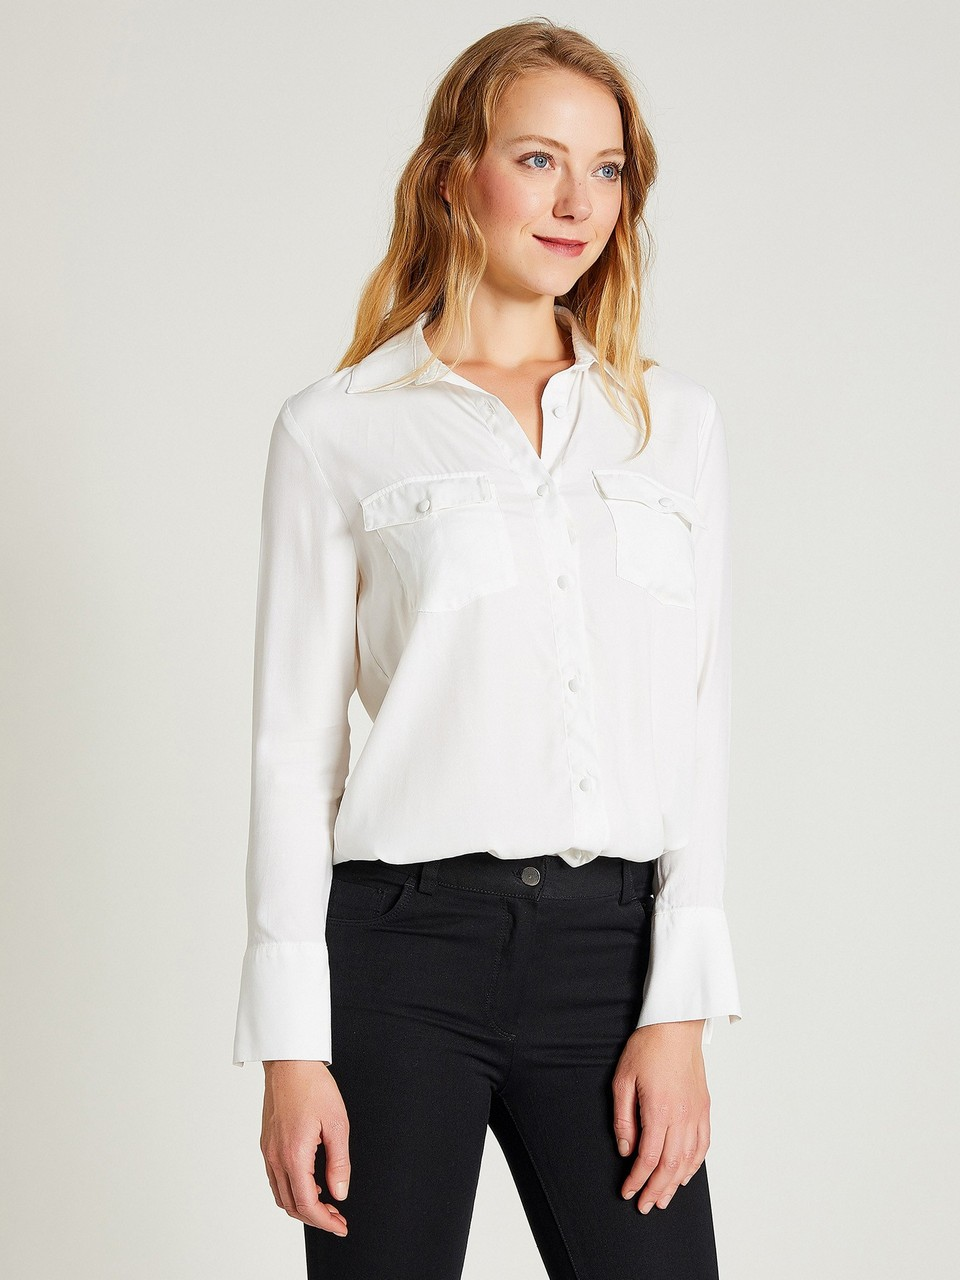 Jacquared Shirt with Double Pocket